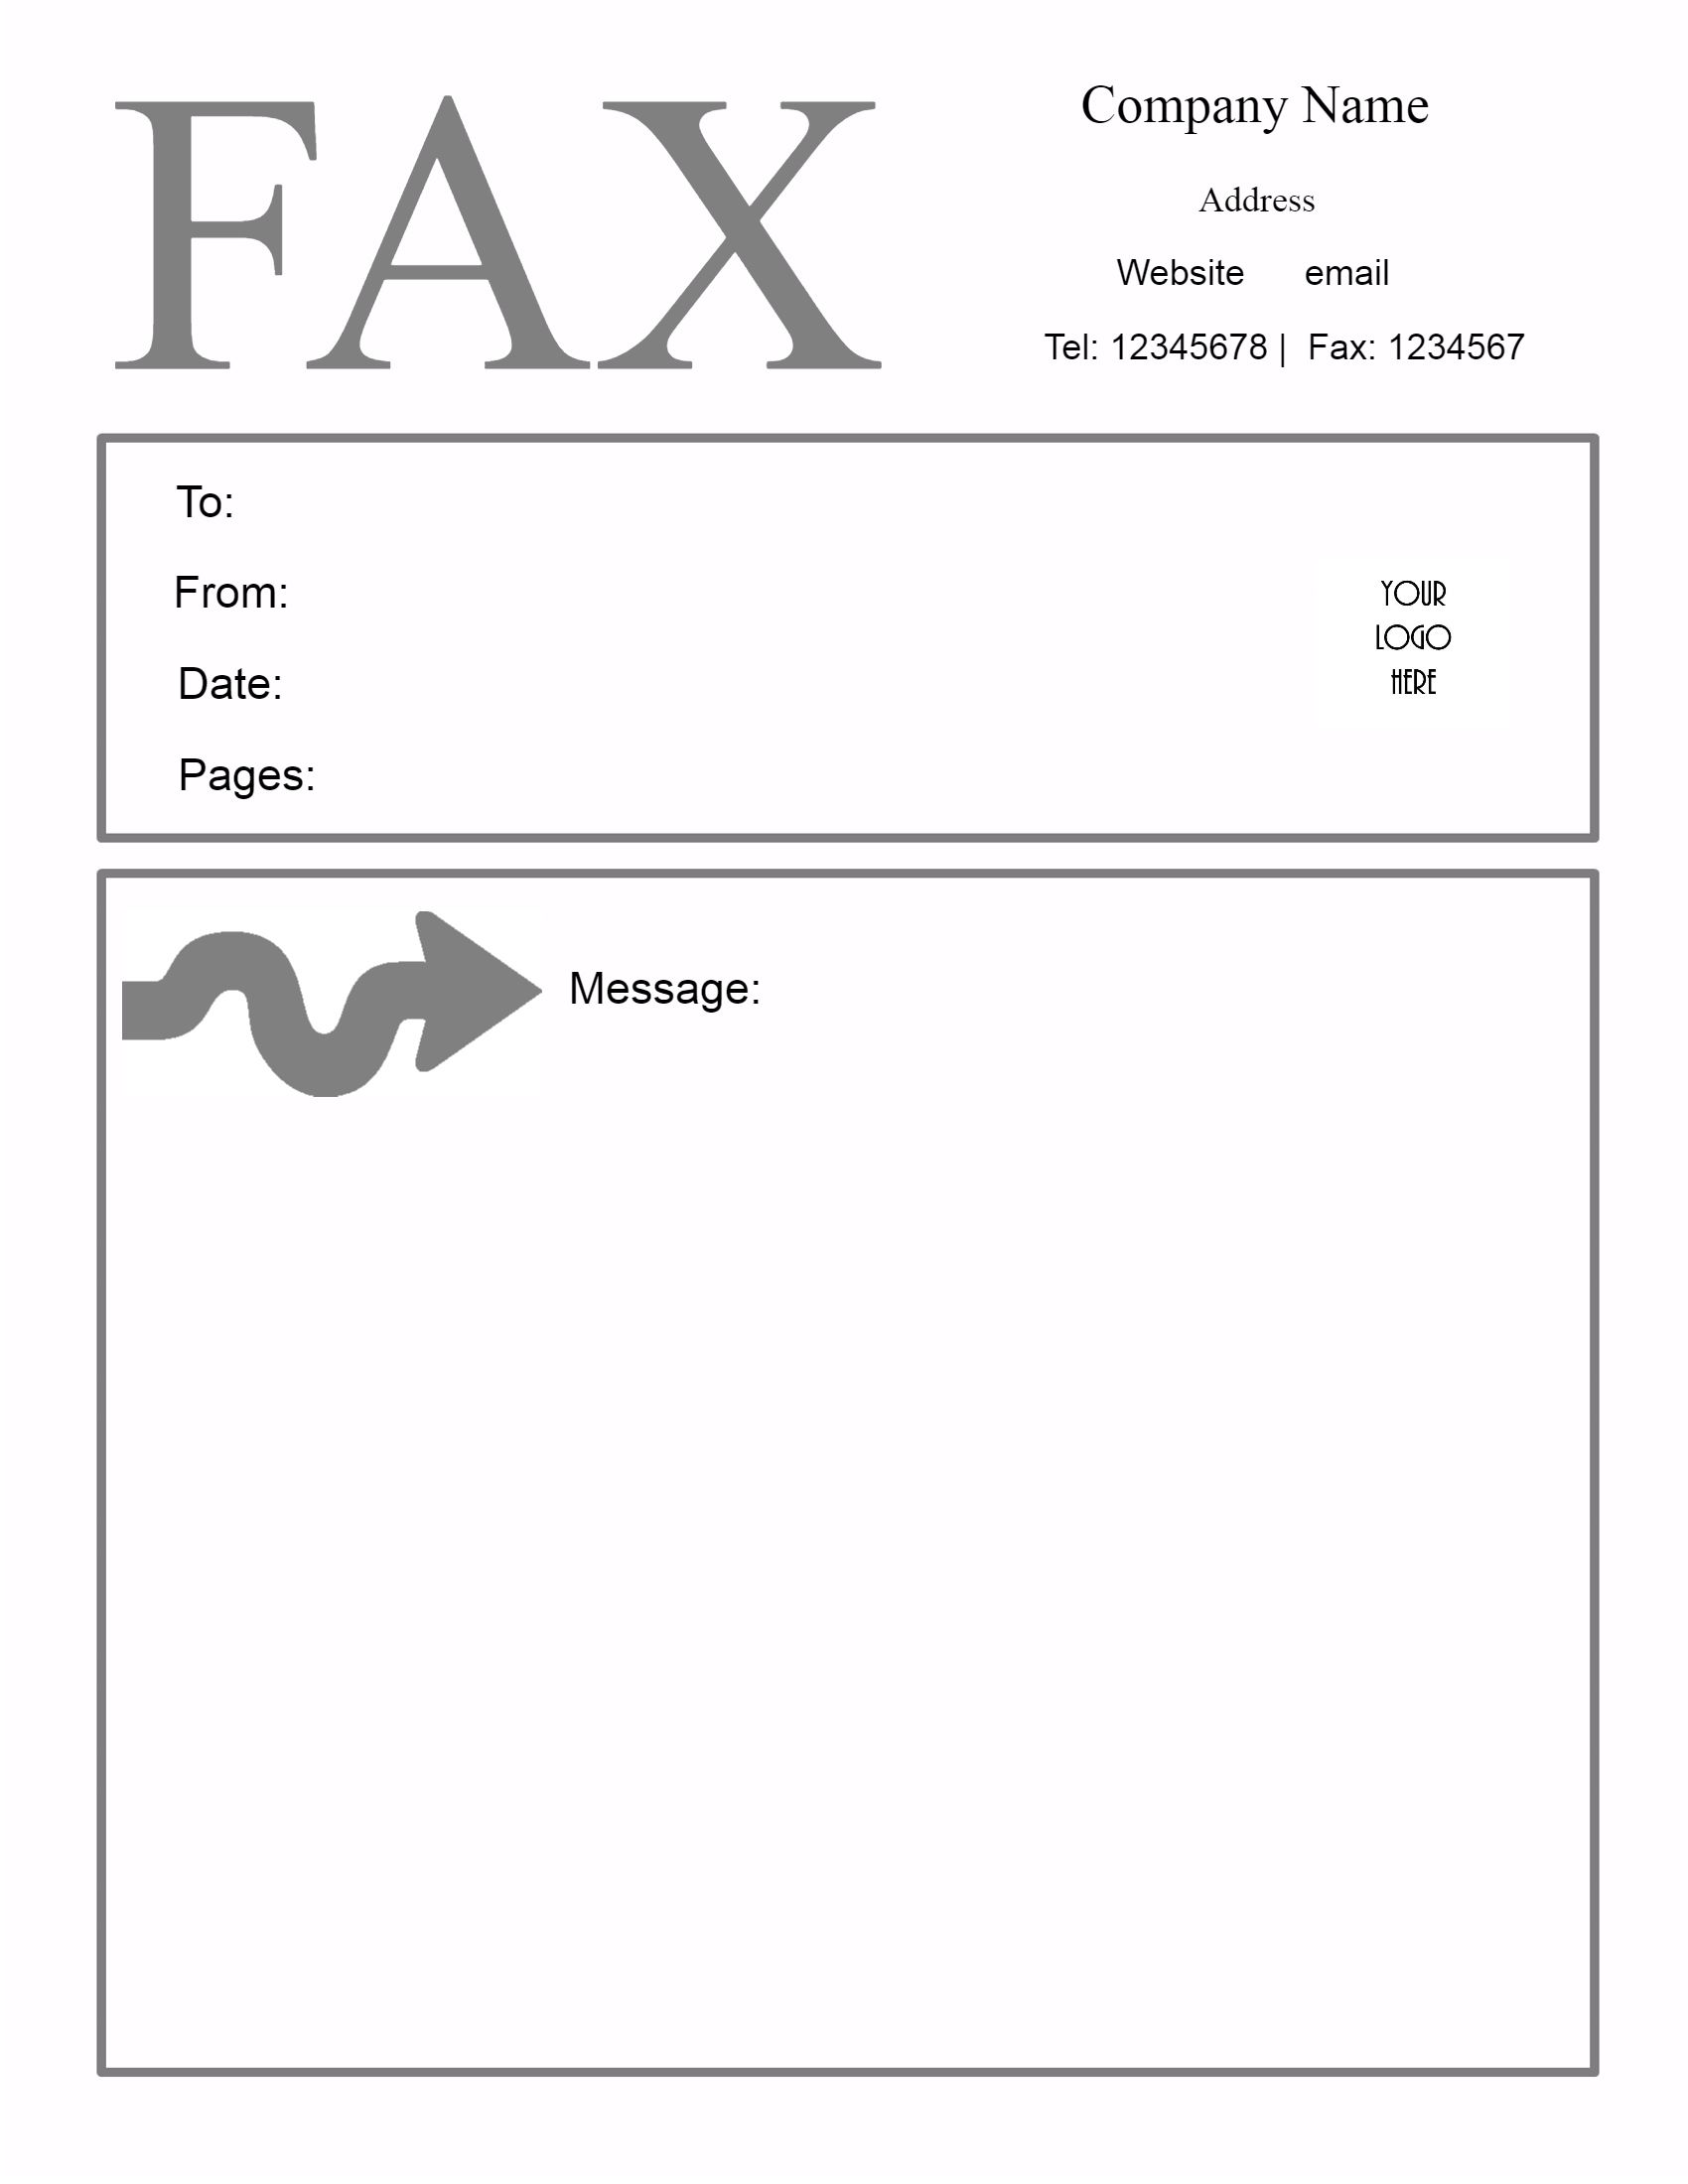 Sample Fax Cover Sheet. Free Fax Templates  Free Cover Sheet